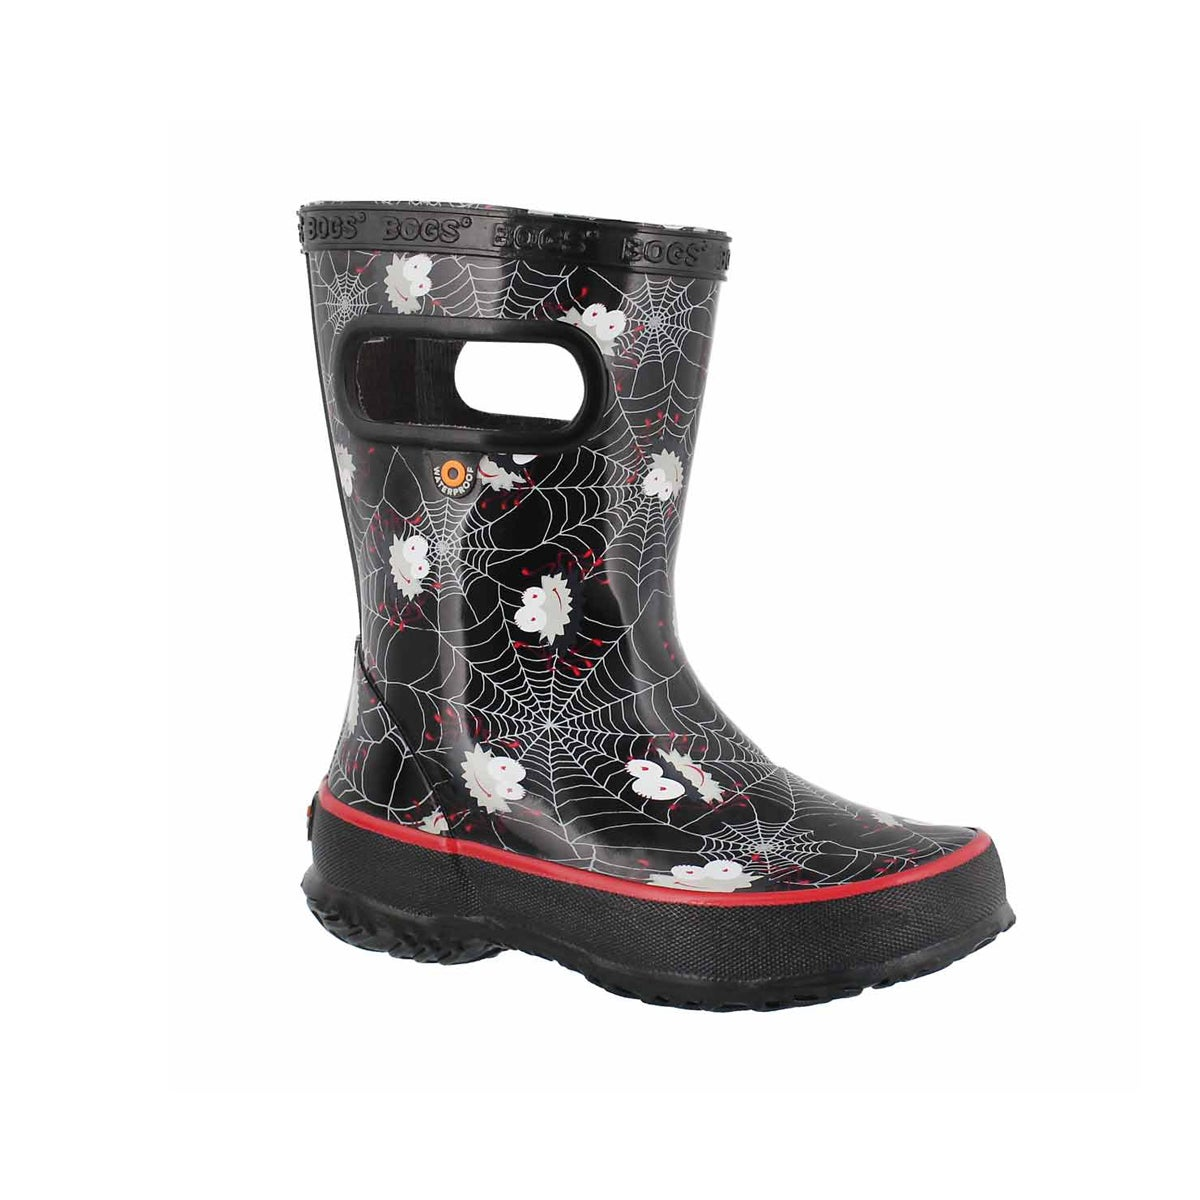 Infants' SKIPPER SPIDERS black multi rain boots